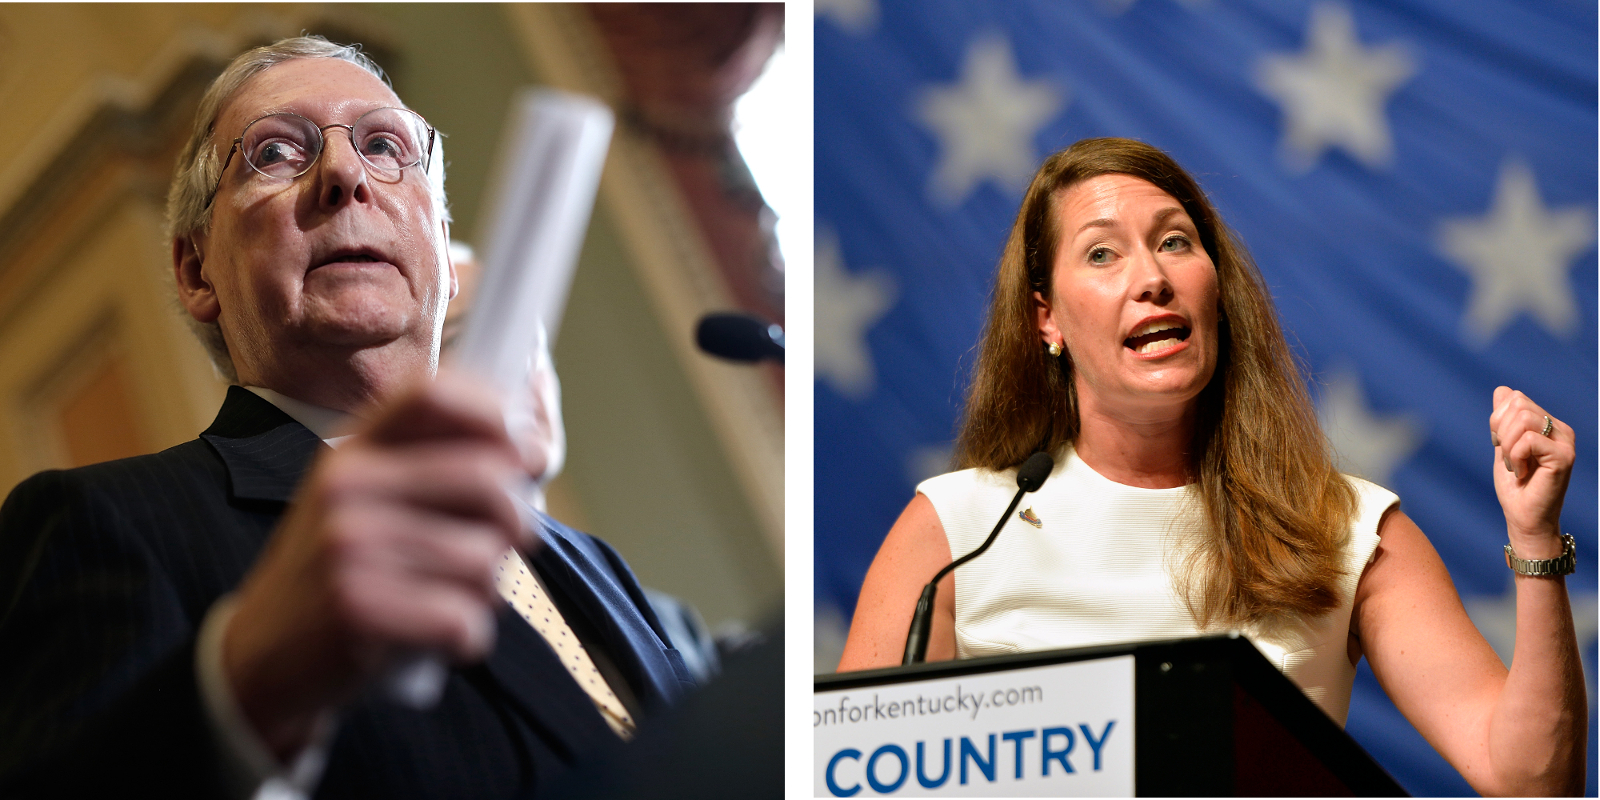 Sen. Mitch McConnell, R-Ky., and Alison Lundergan Grimes, a Democrat, are engaged in a heated Senate race.